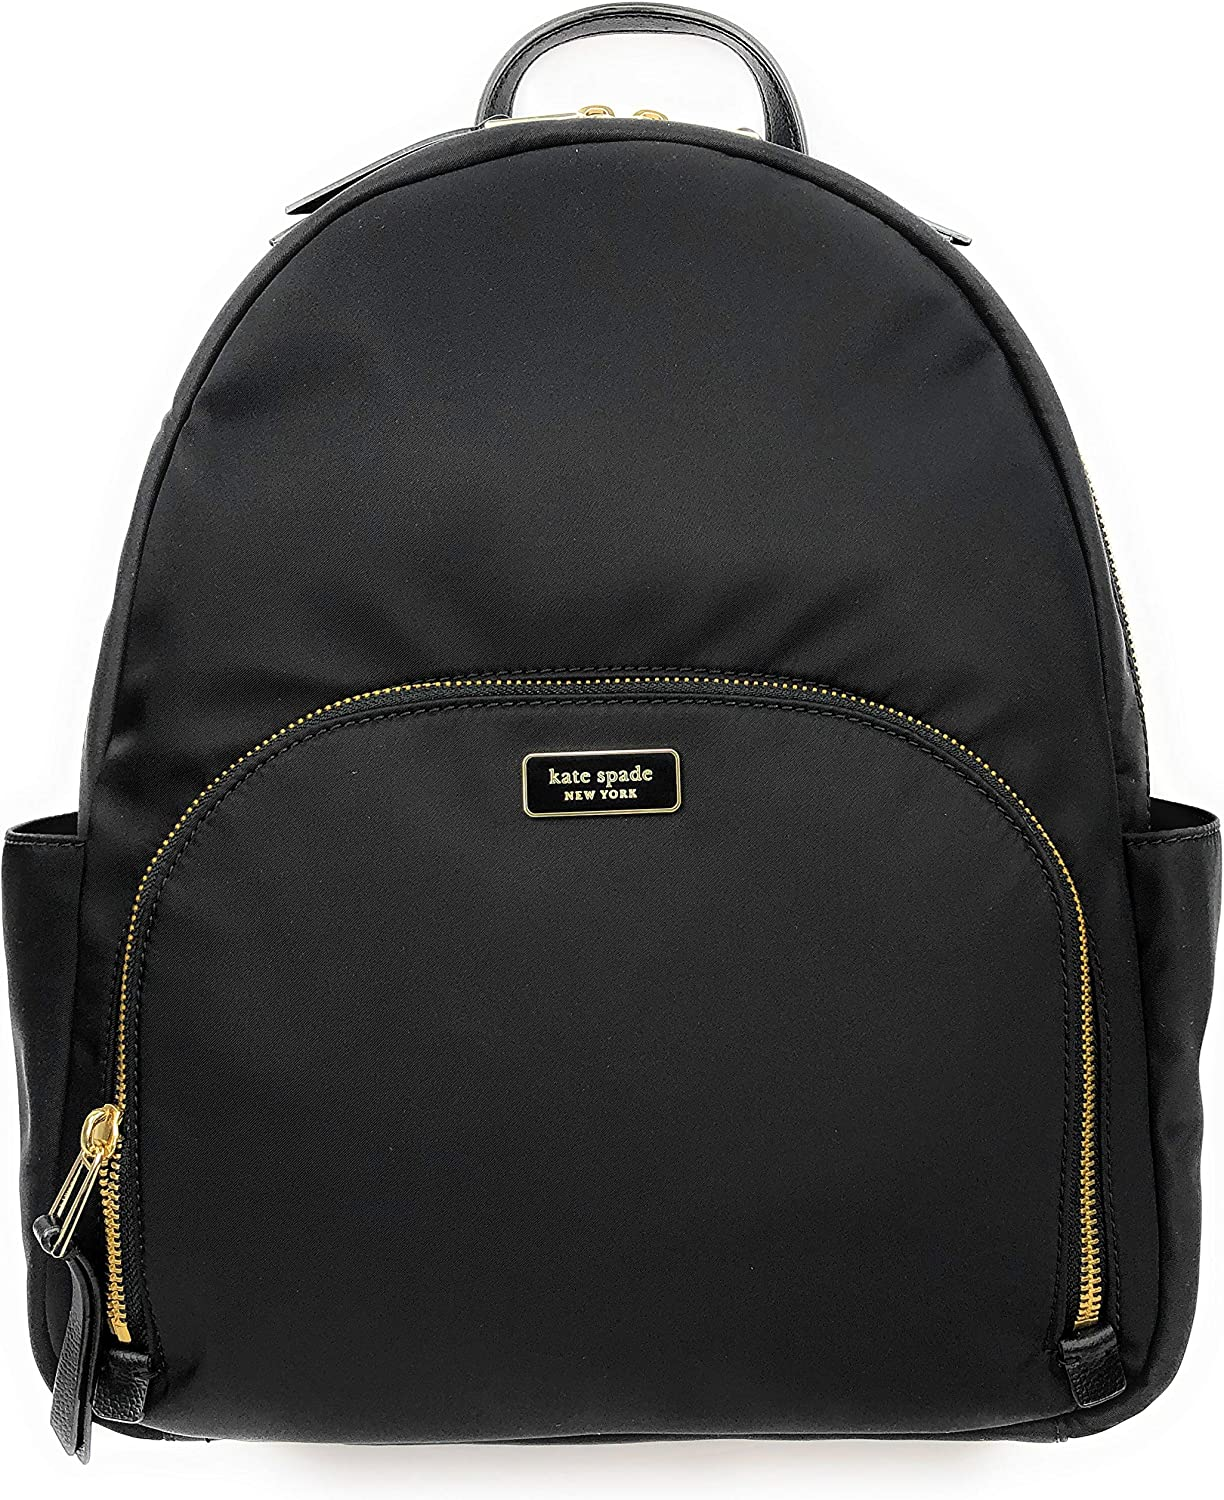 Kate Spade New York Dawn Large Backpack